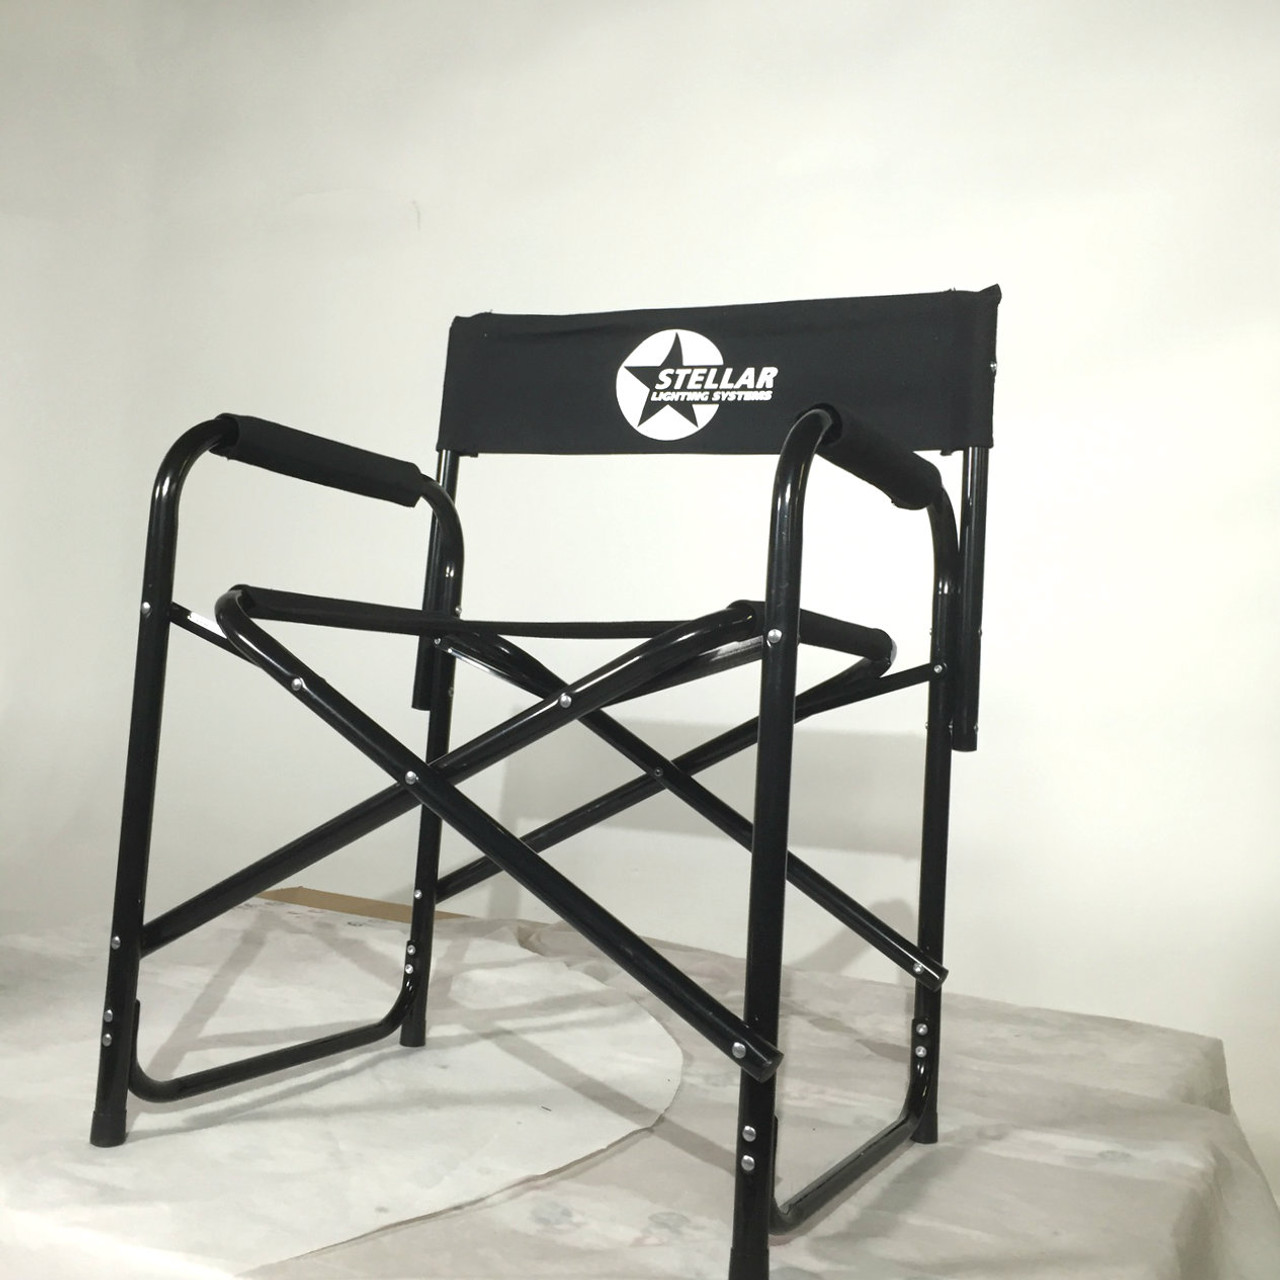 Stellar Short Makeup Chair